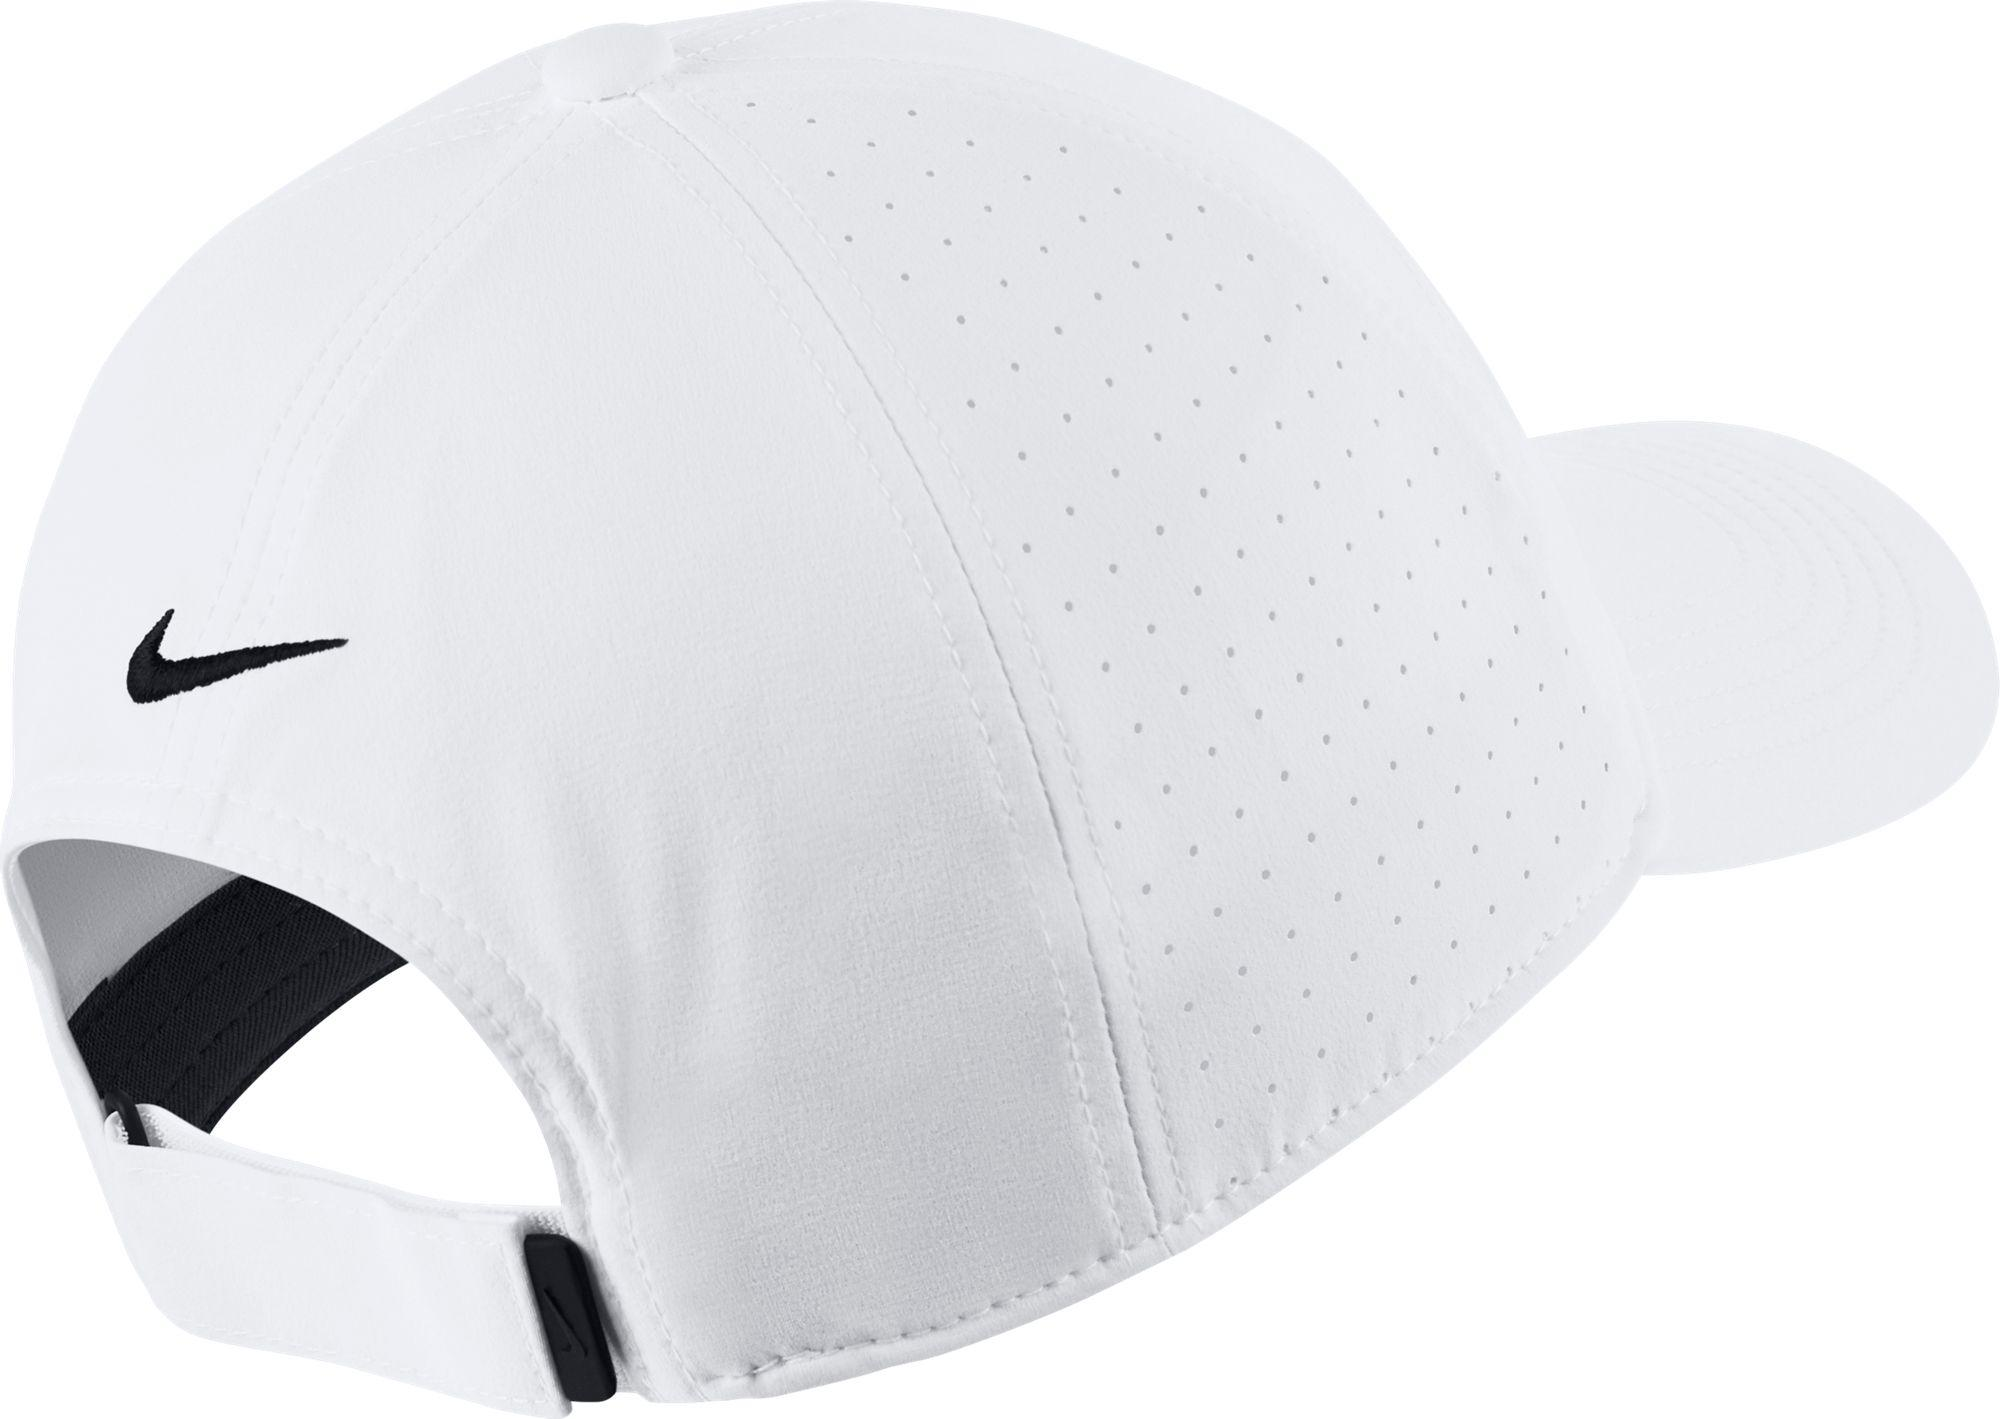 c25e74e4 Nike - White Legacy 91 Perforated Golf Hat for Men - Lyst. View fullscreen